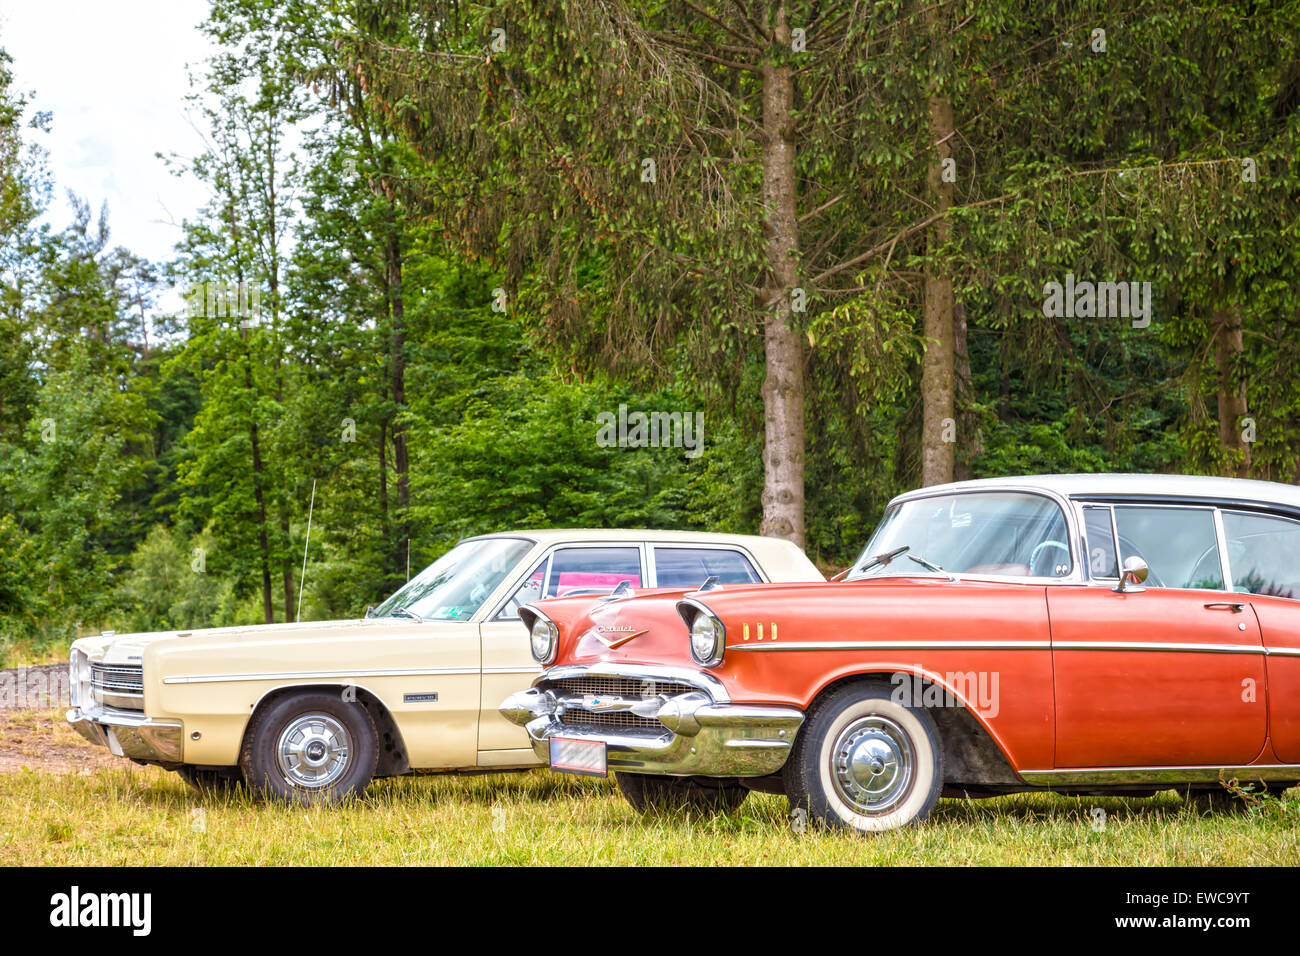 US Classic Cars Stock Photo, Royalty Free Image: 84479132 - Alamy